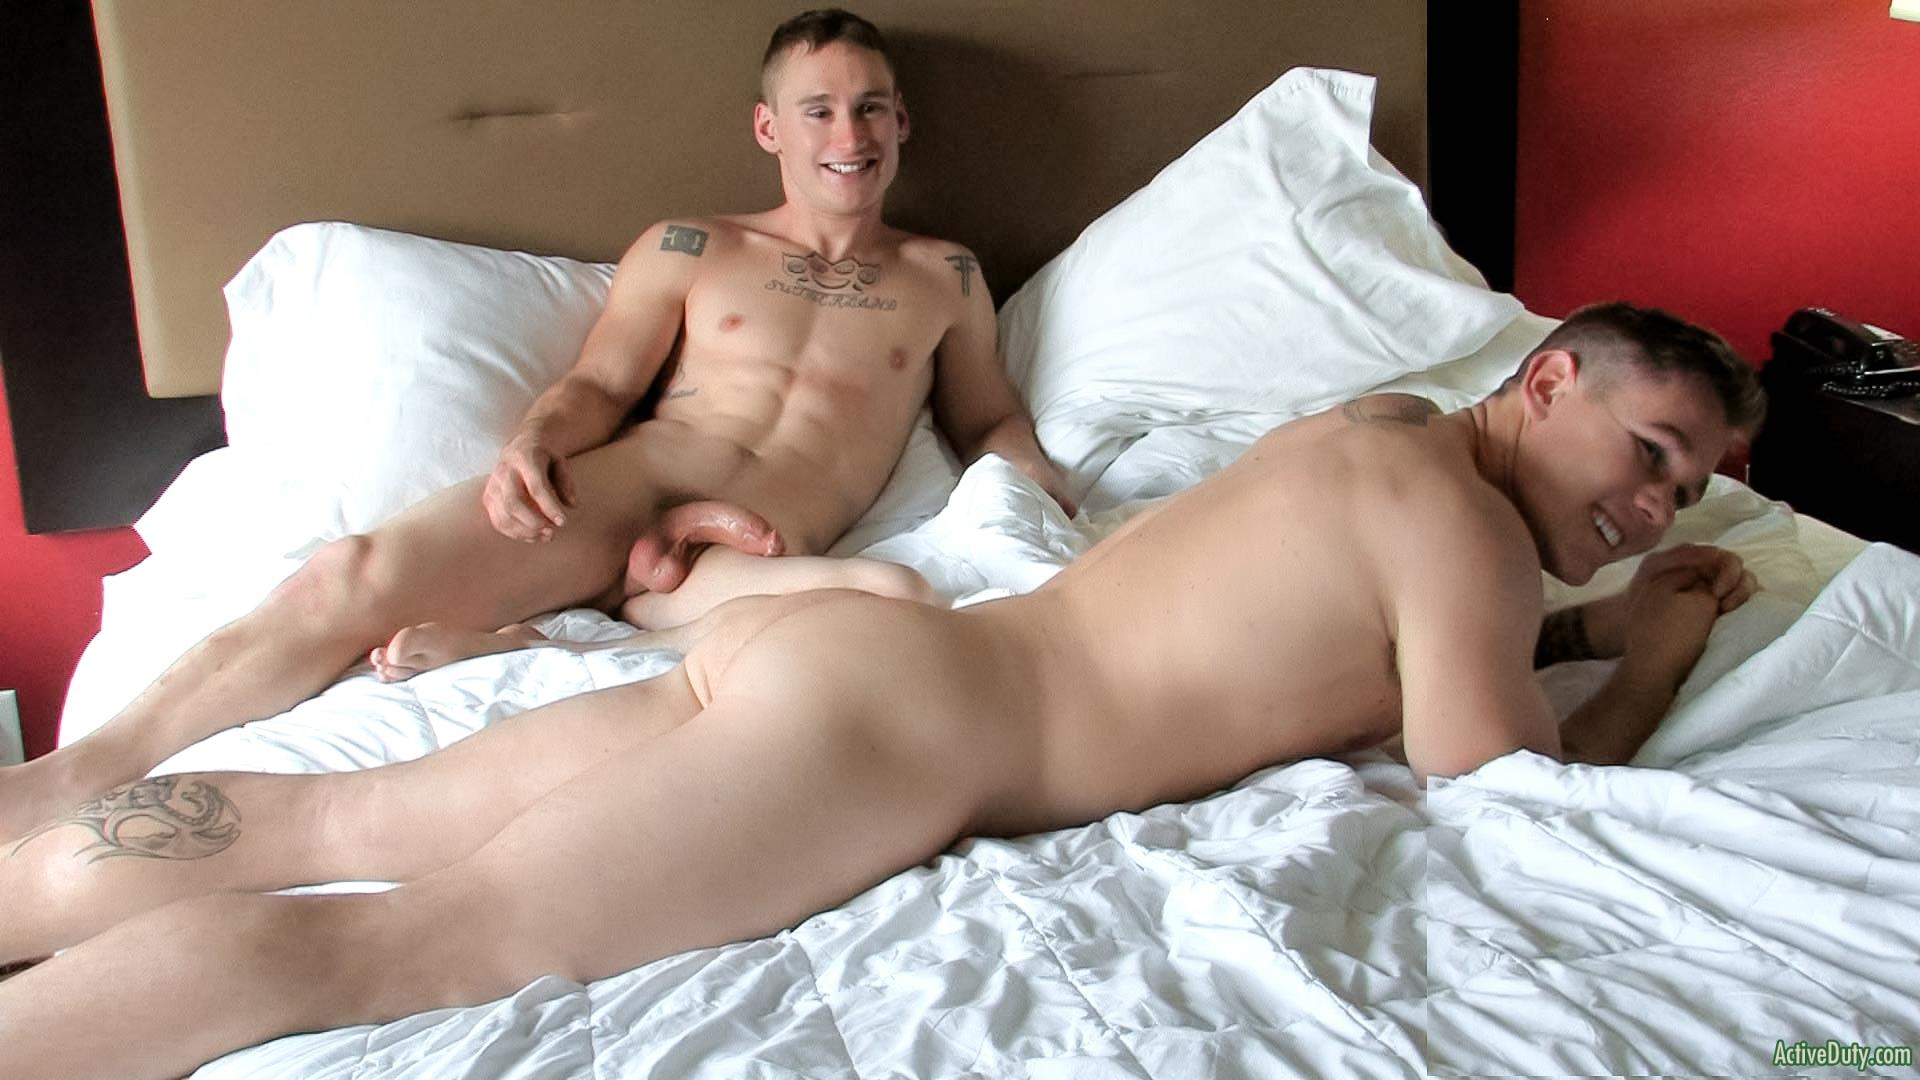 Sexy gay men in bed